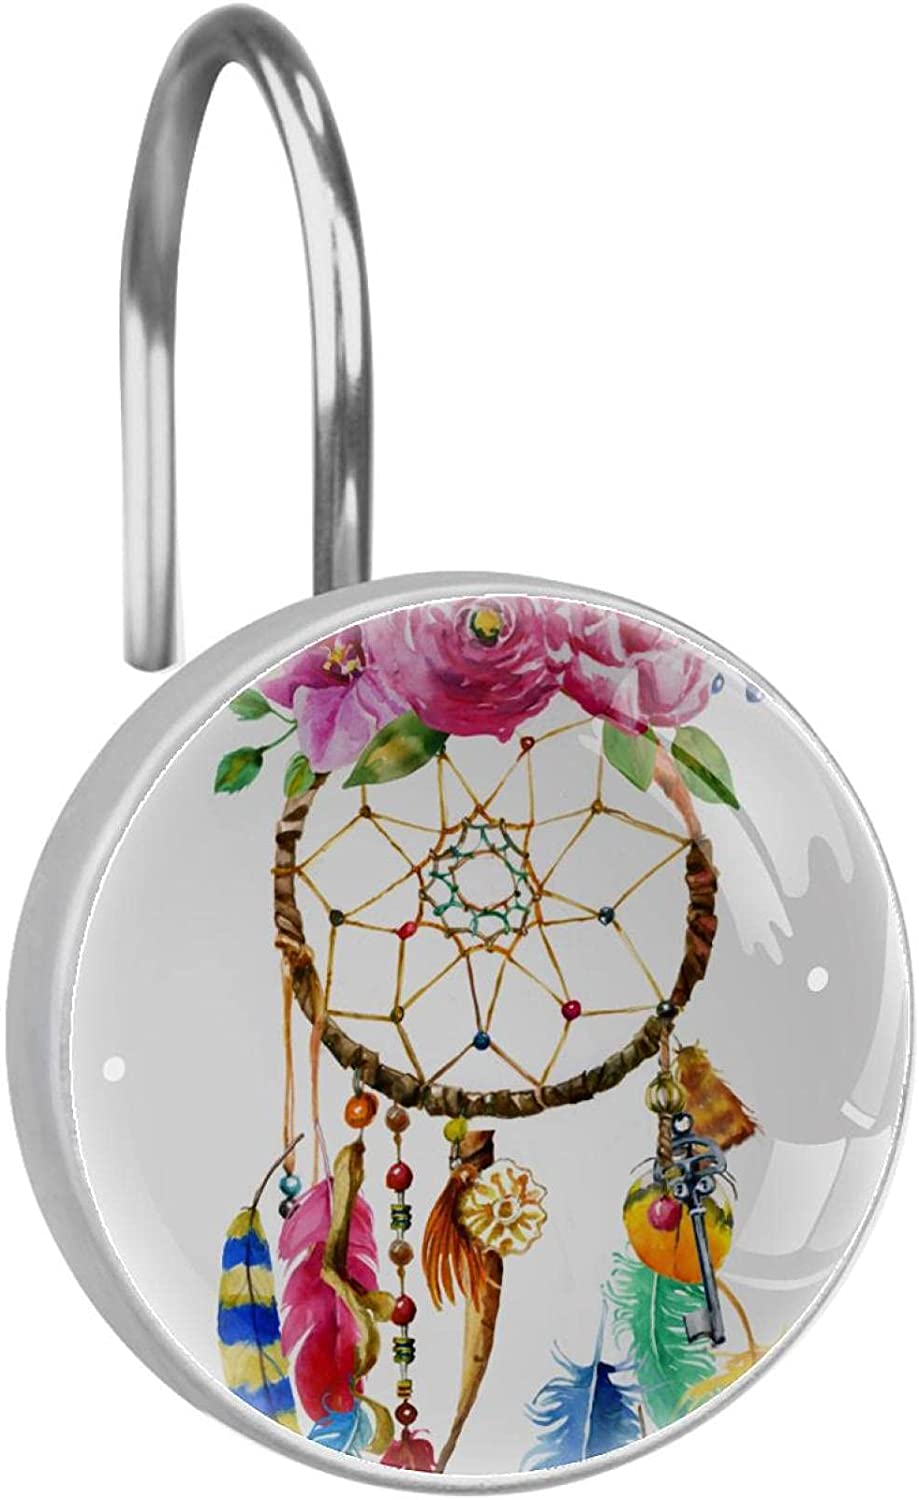 Stainless Super beauty product restock quality top Steel Anti-rustDecorative Hanger Albuquerque Mall Dream Catcher Ro Ring